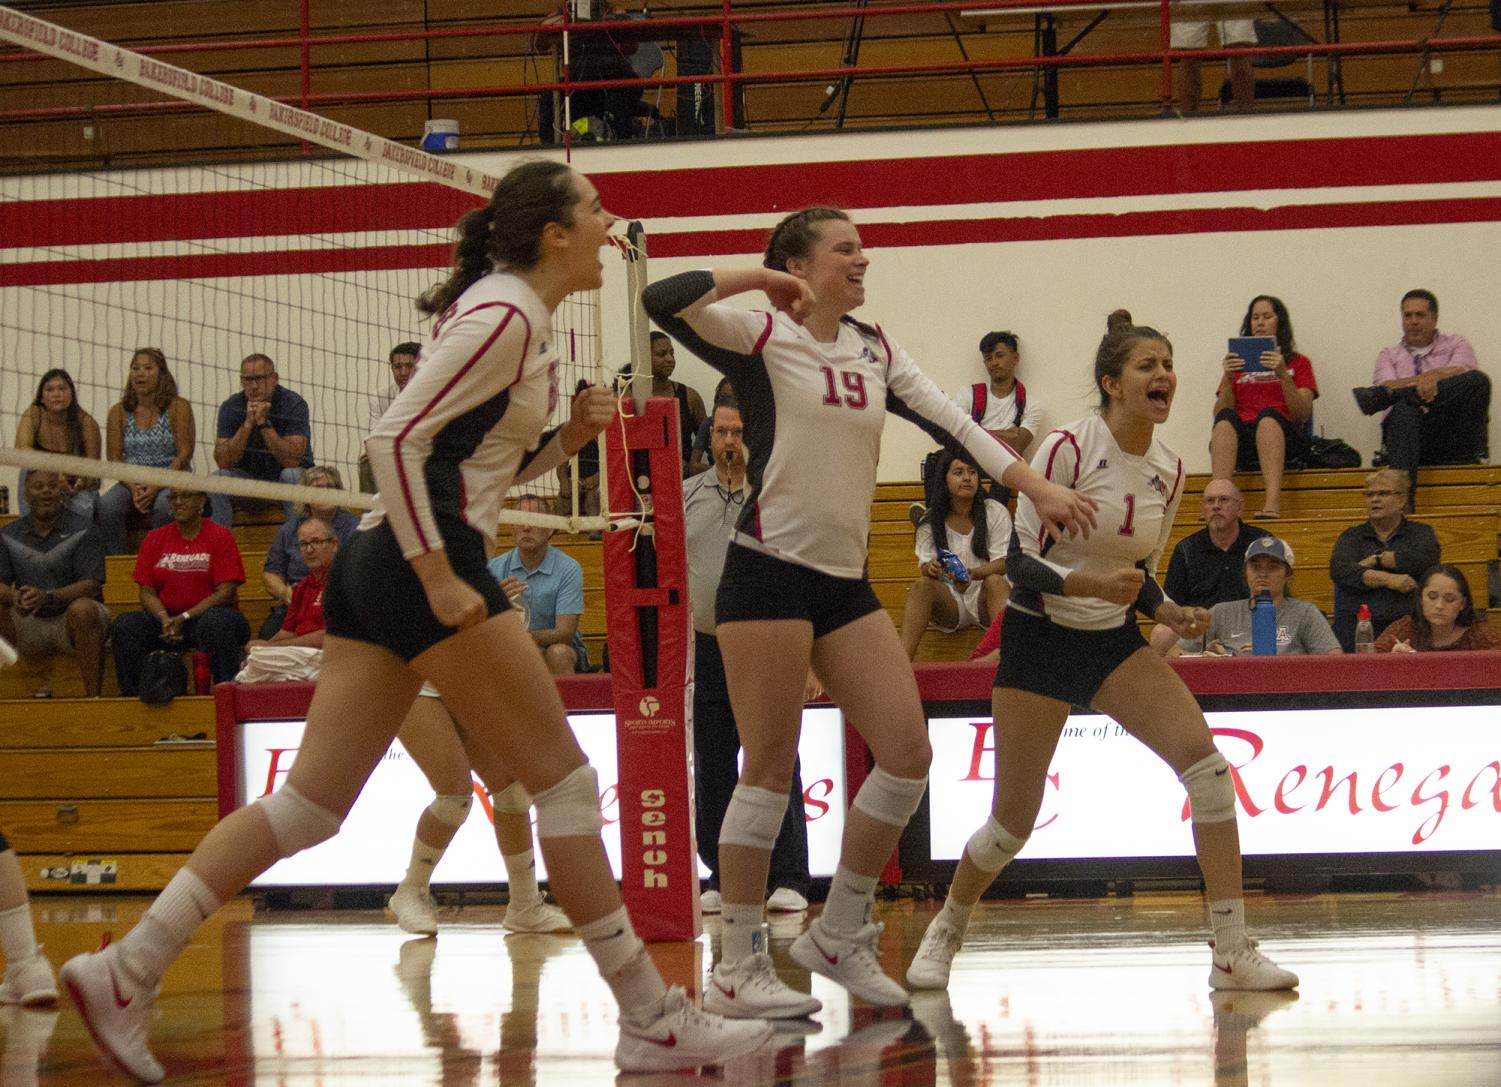 Alison Dees celebrates after scoring a kill against College of the Canyons, on Wednesday.